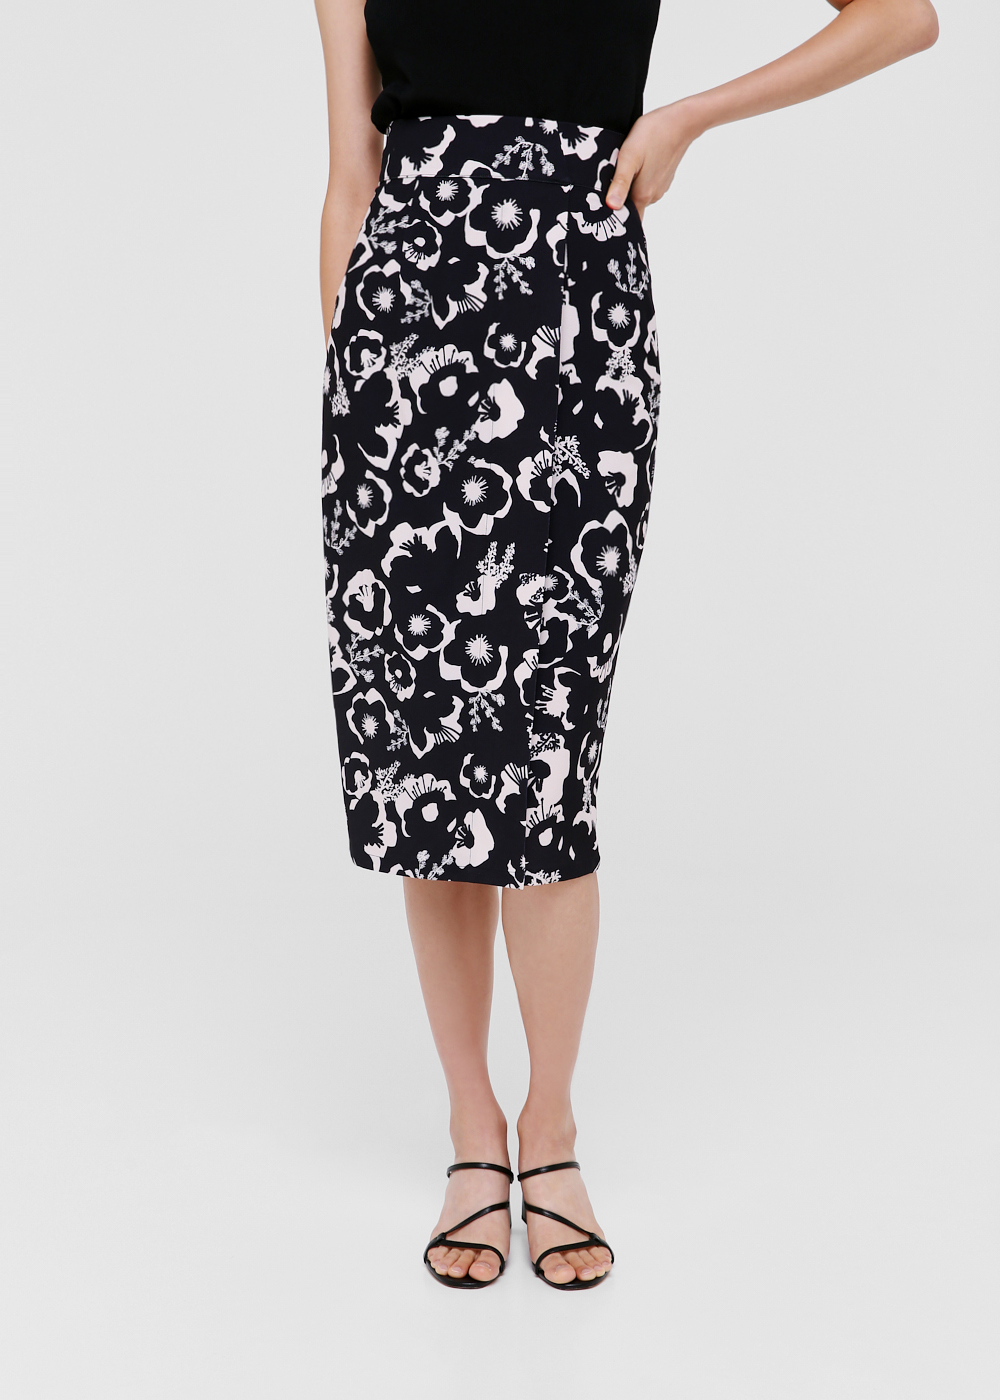 Torie Foldover Midi Bodycon Skirt in Anemone Bloom